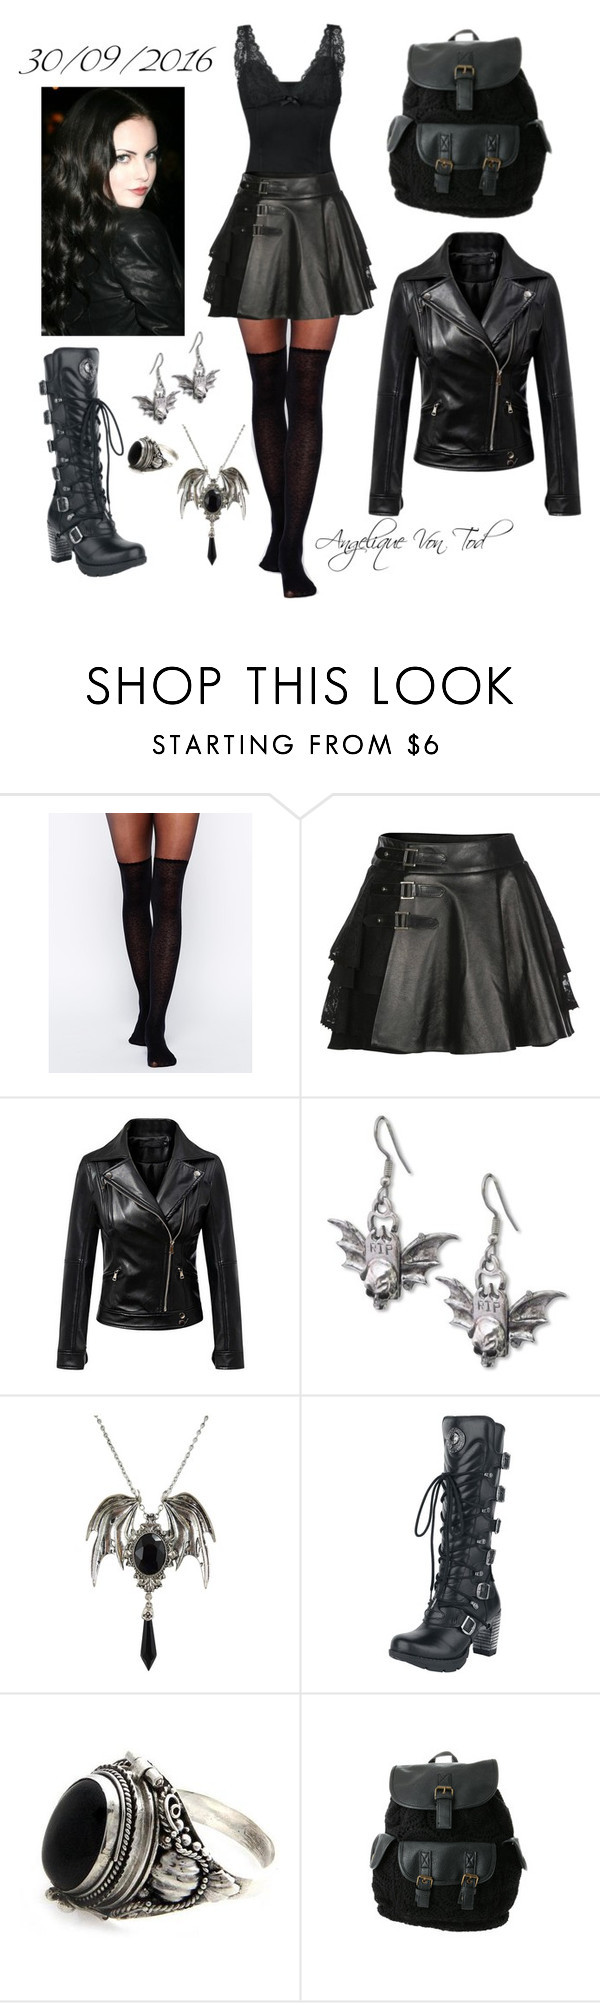 """Heavy Metal Outfit"" by angelique-von-tod ❤ liked on Polyvore featuring Gipsy, Mairi Mcdonald, Chicnova Fashion, NOVICA and claire's"